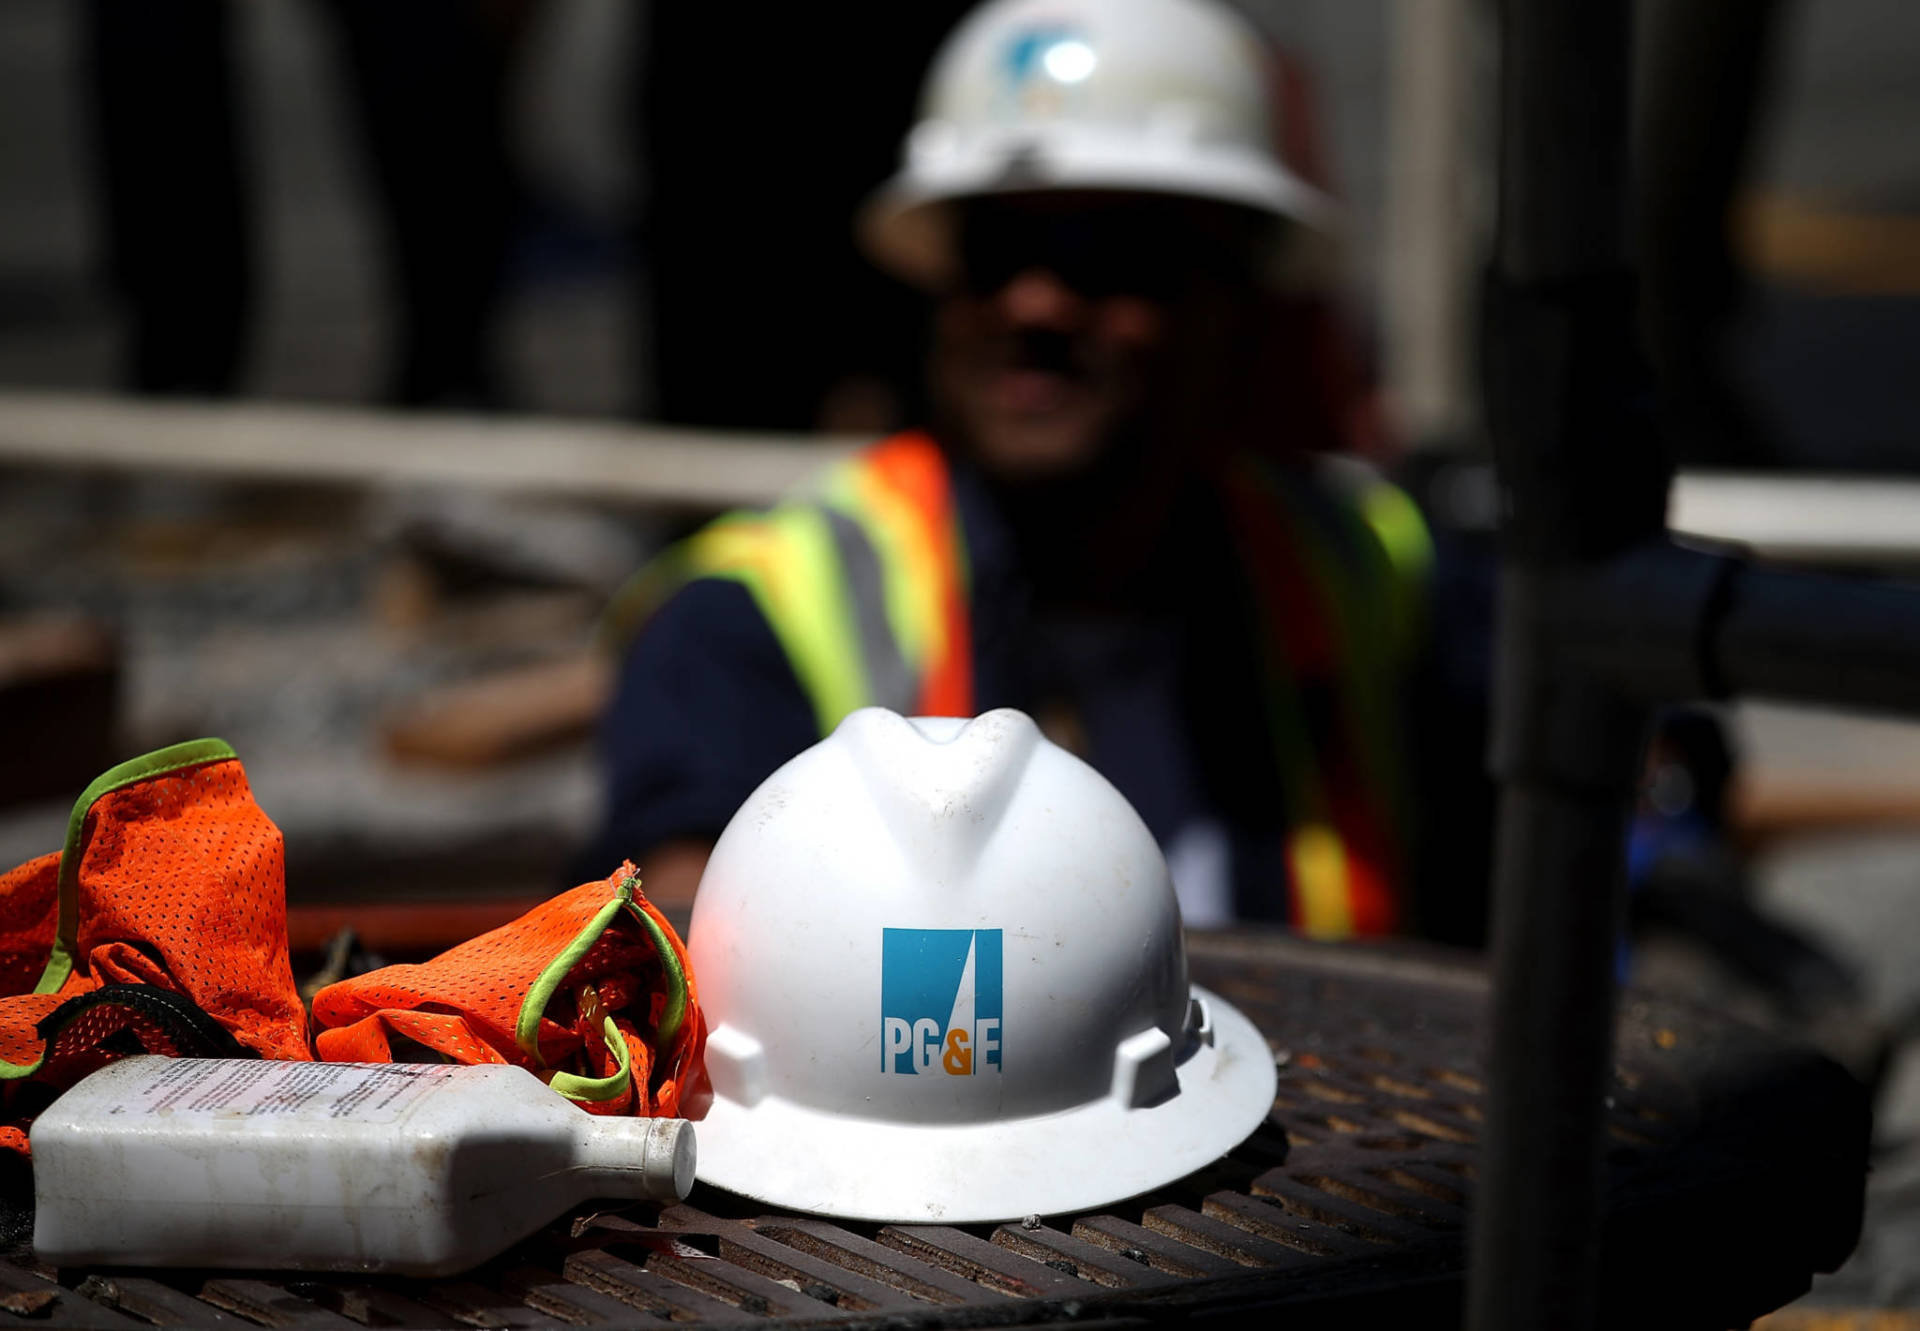 PG&E Confirms 50 Instances of Damage or Hazard to its Equipment During Outages